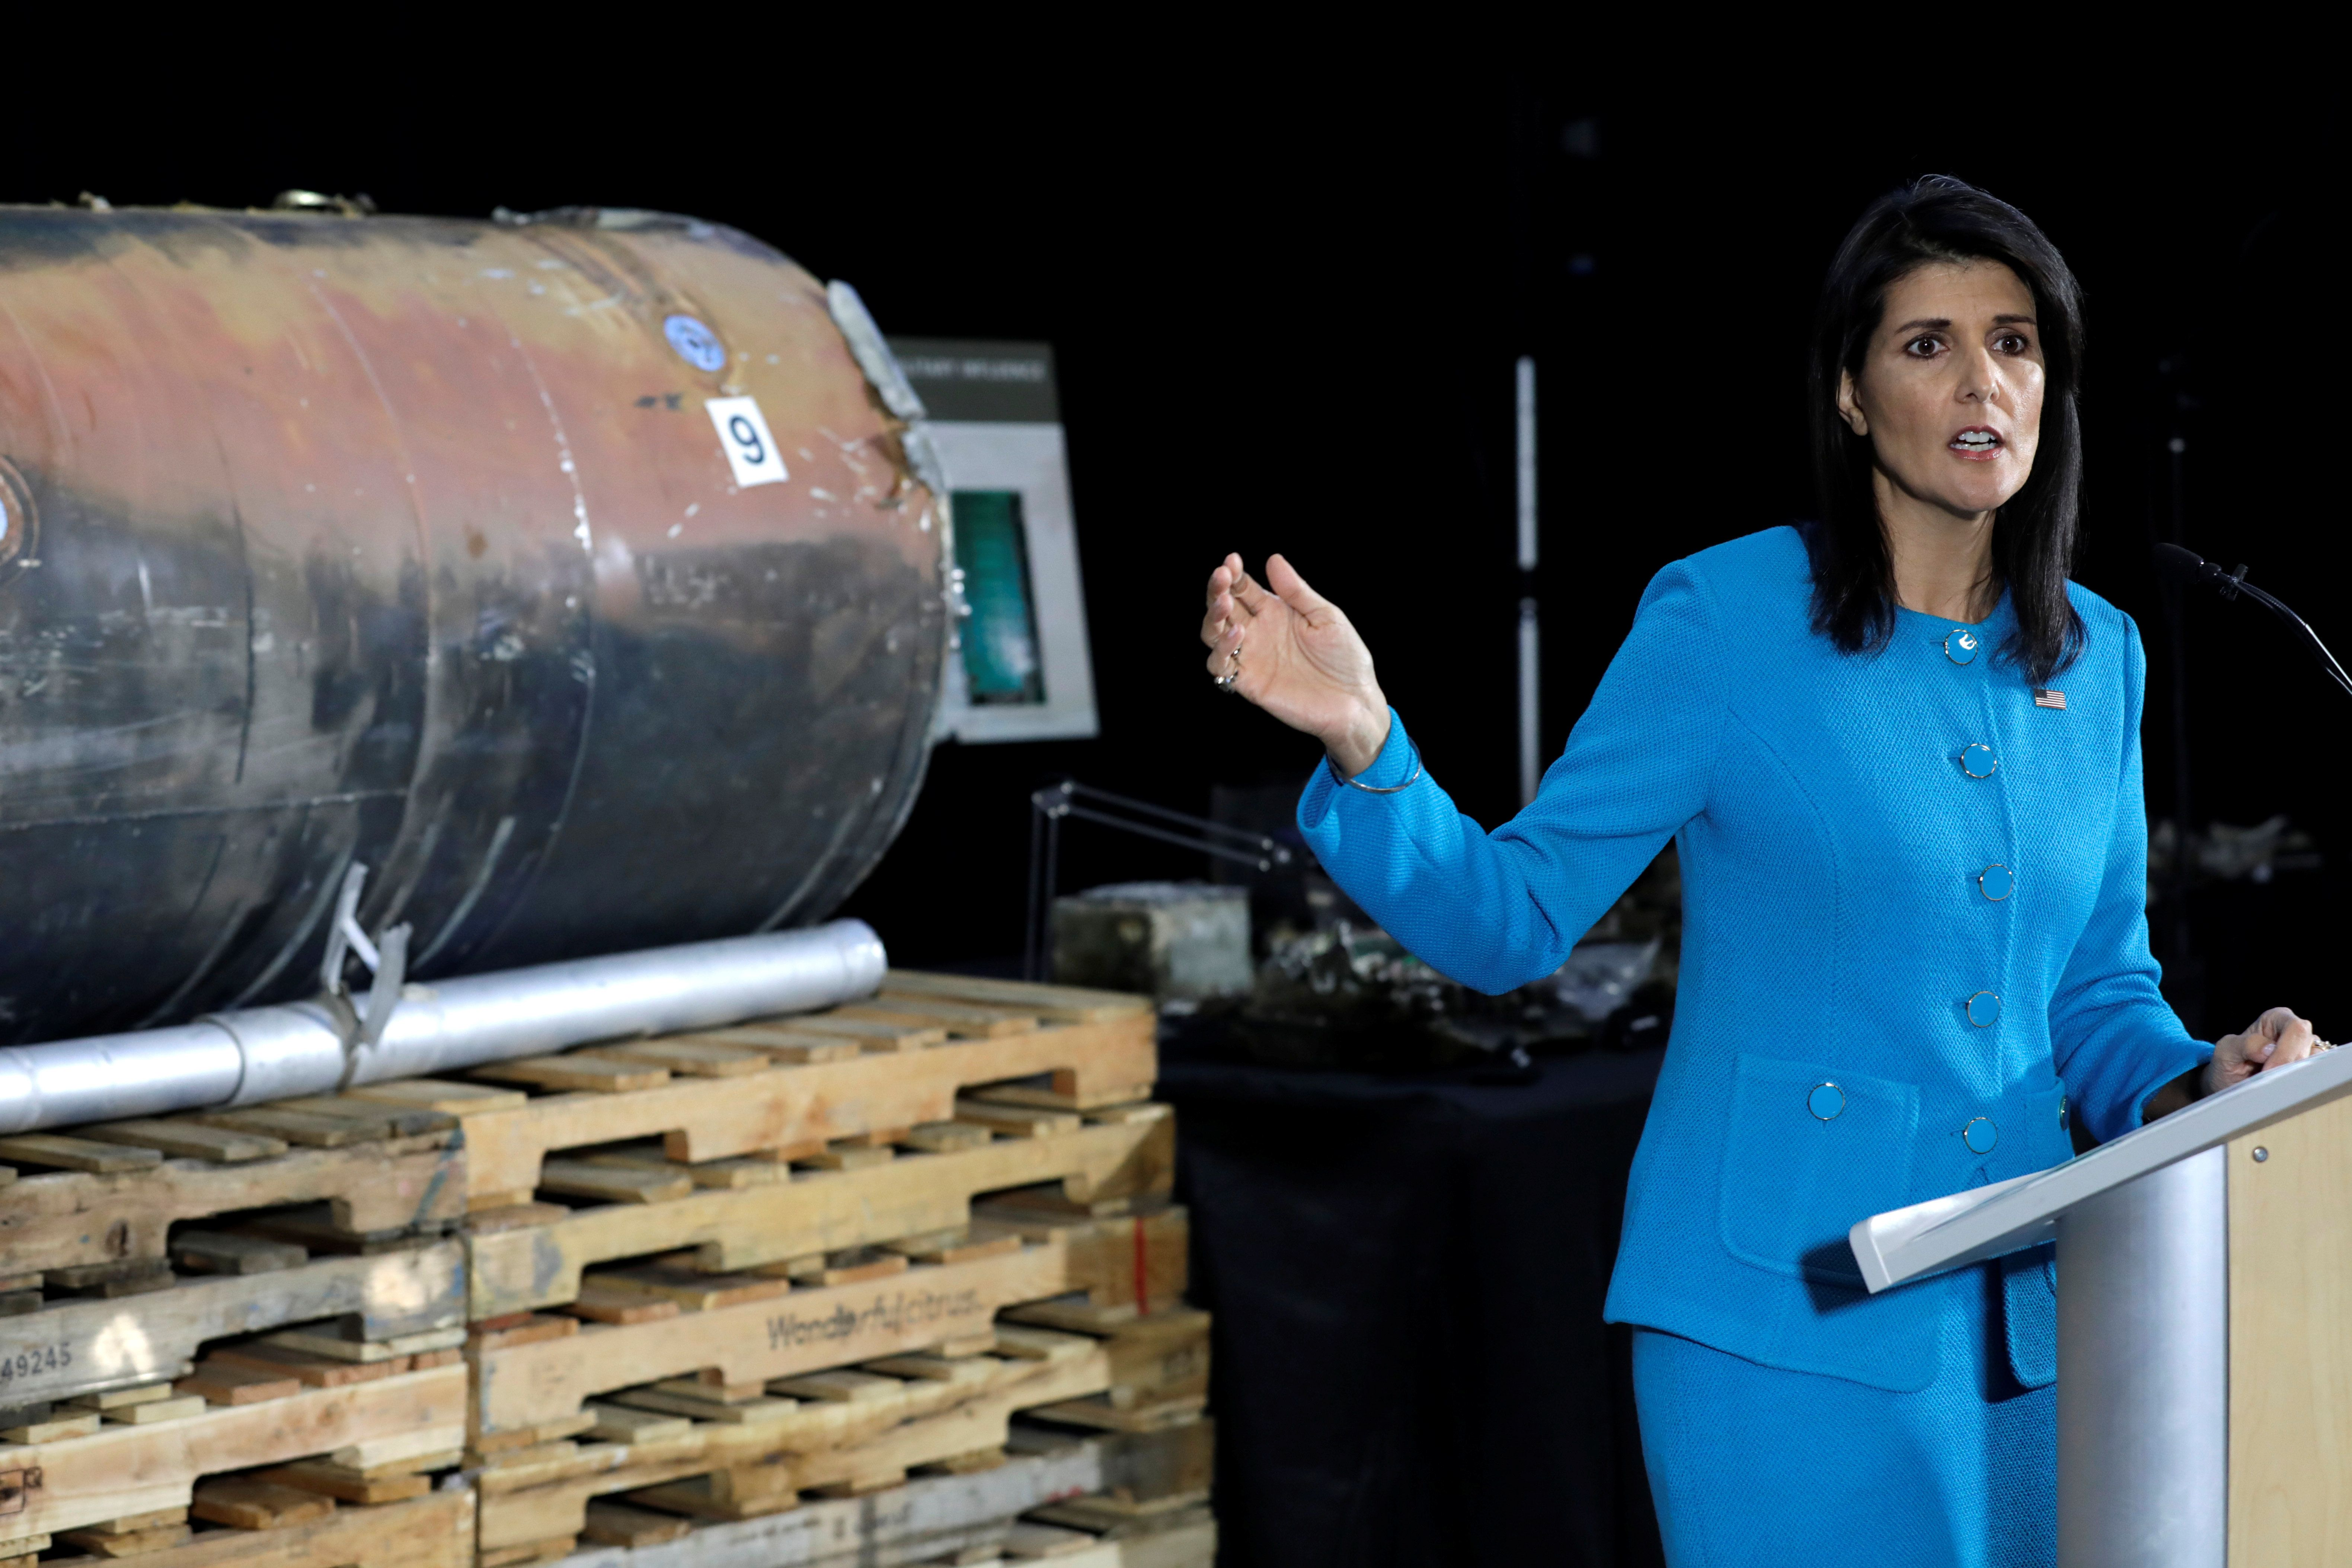 """U.S. Ambassador to the United Nations Nikki Haley briefs the media in front of remains of Iranian """"Qiam"""" ballistic missile provided by Pentagon at Joint Base Anacostia-Bolling in Washington, U.S., December 14, 2017. REUTERS/Yuri Gripas"""